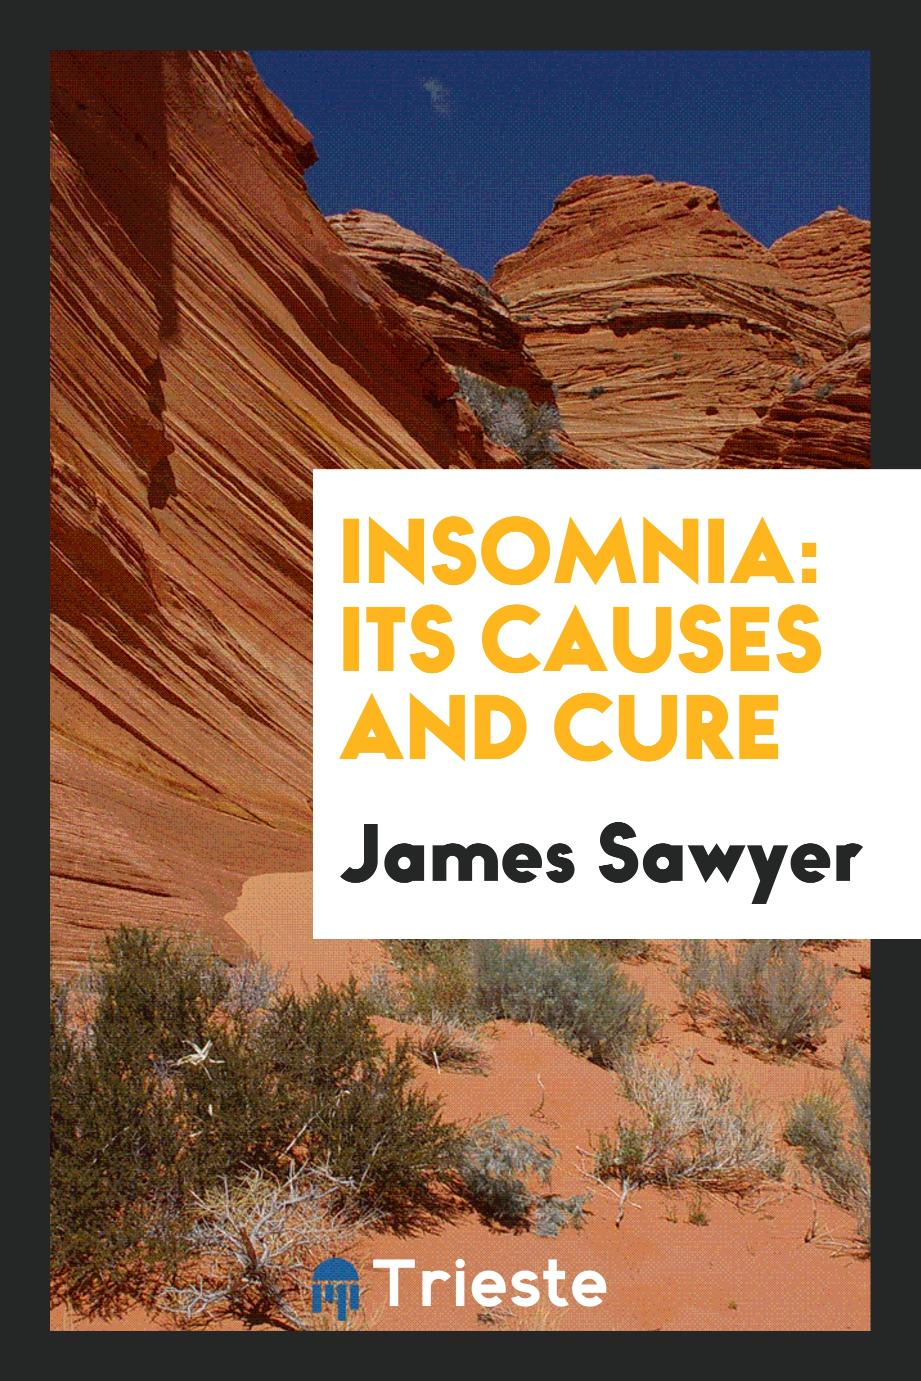 Insomnia: its causes and cure